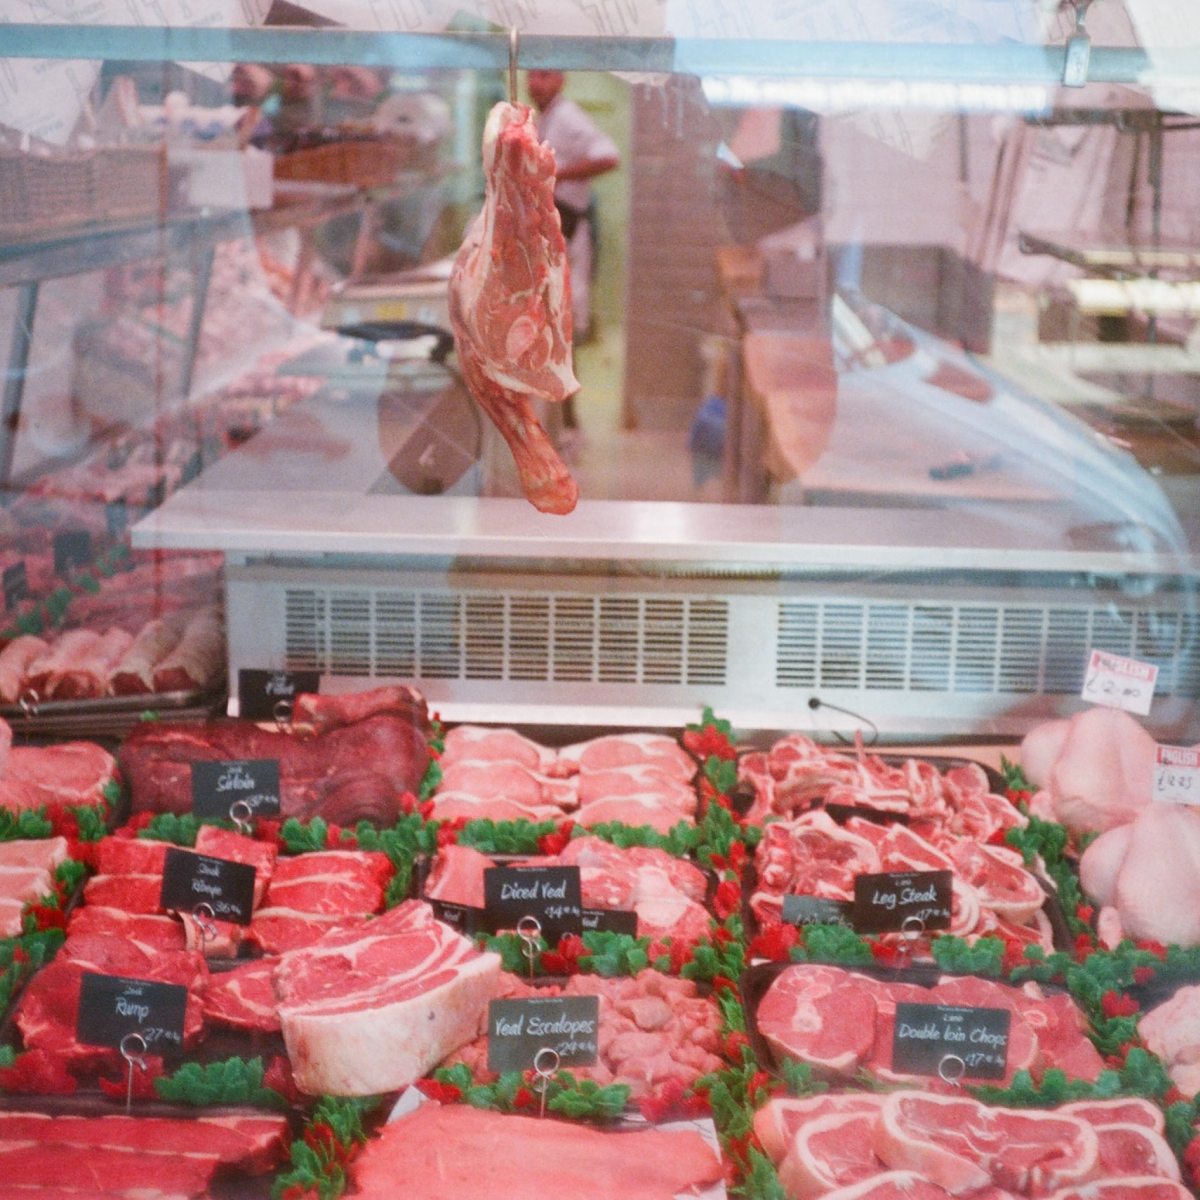 Red meat is a lasting source of iron. It is usually a physician's first recommendation to patients.